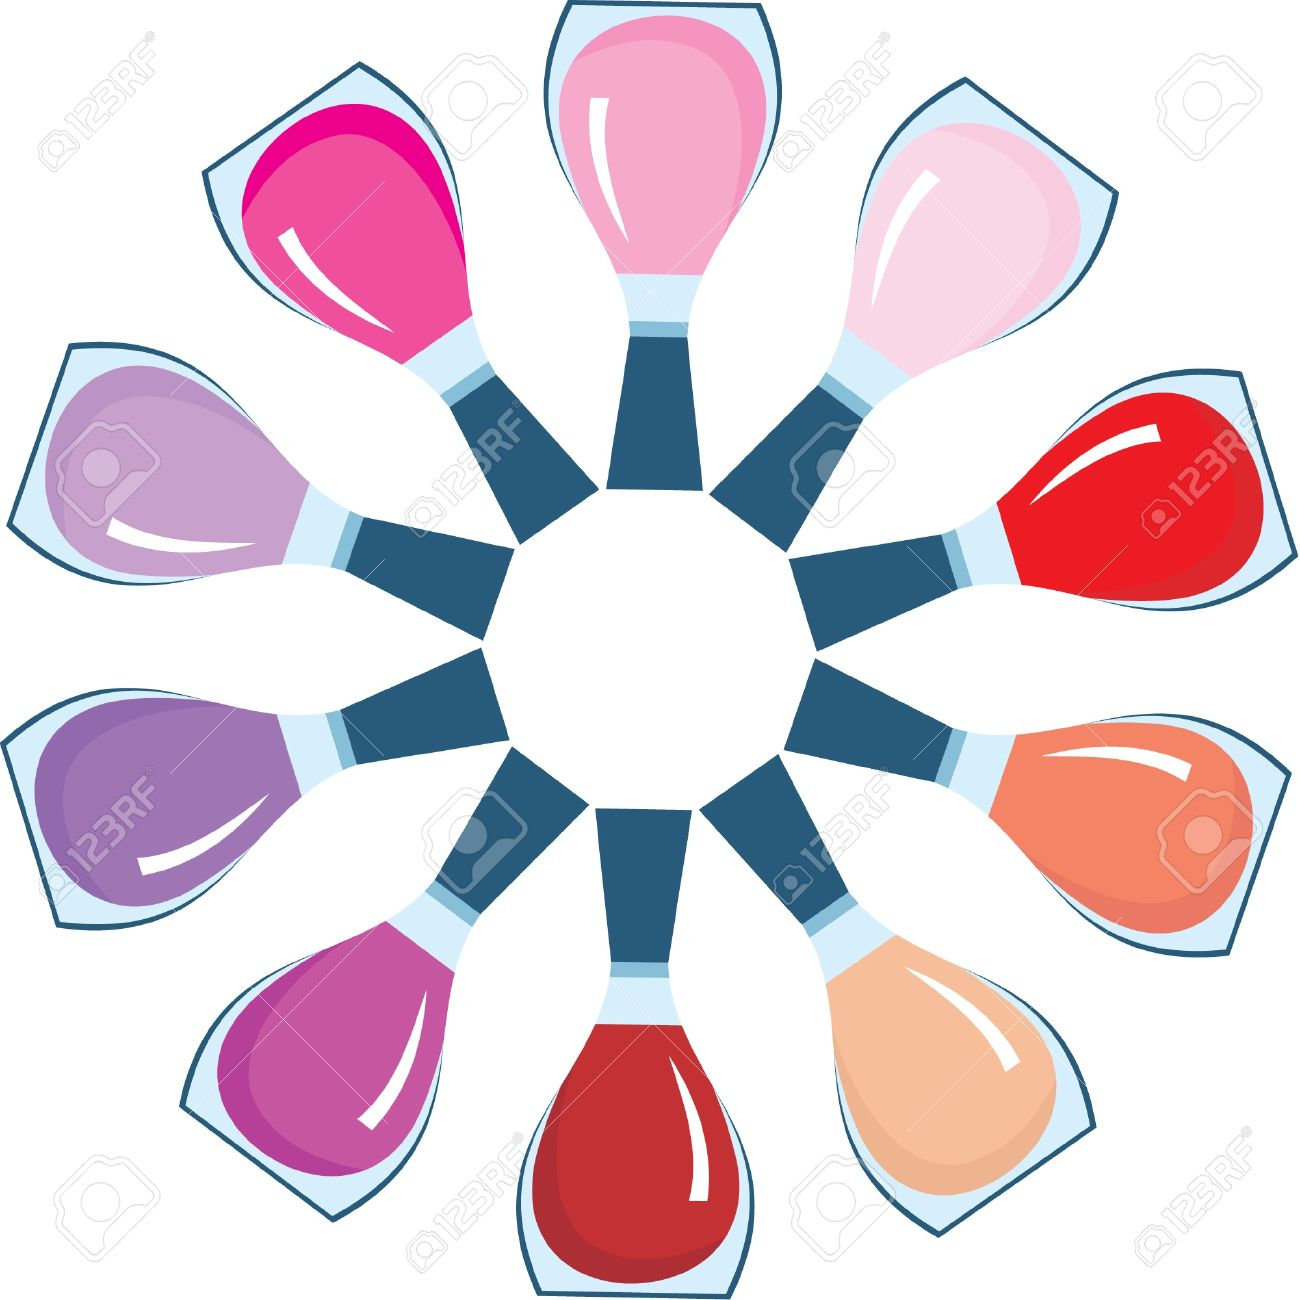 Fingernail Clipart At Getdrawings Free For Personal Use